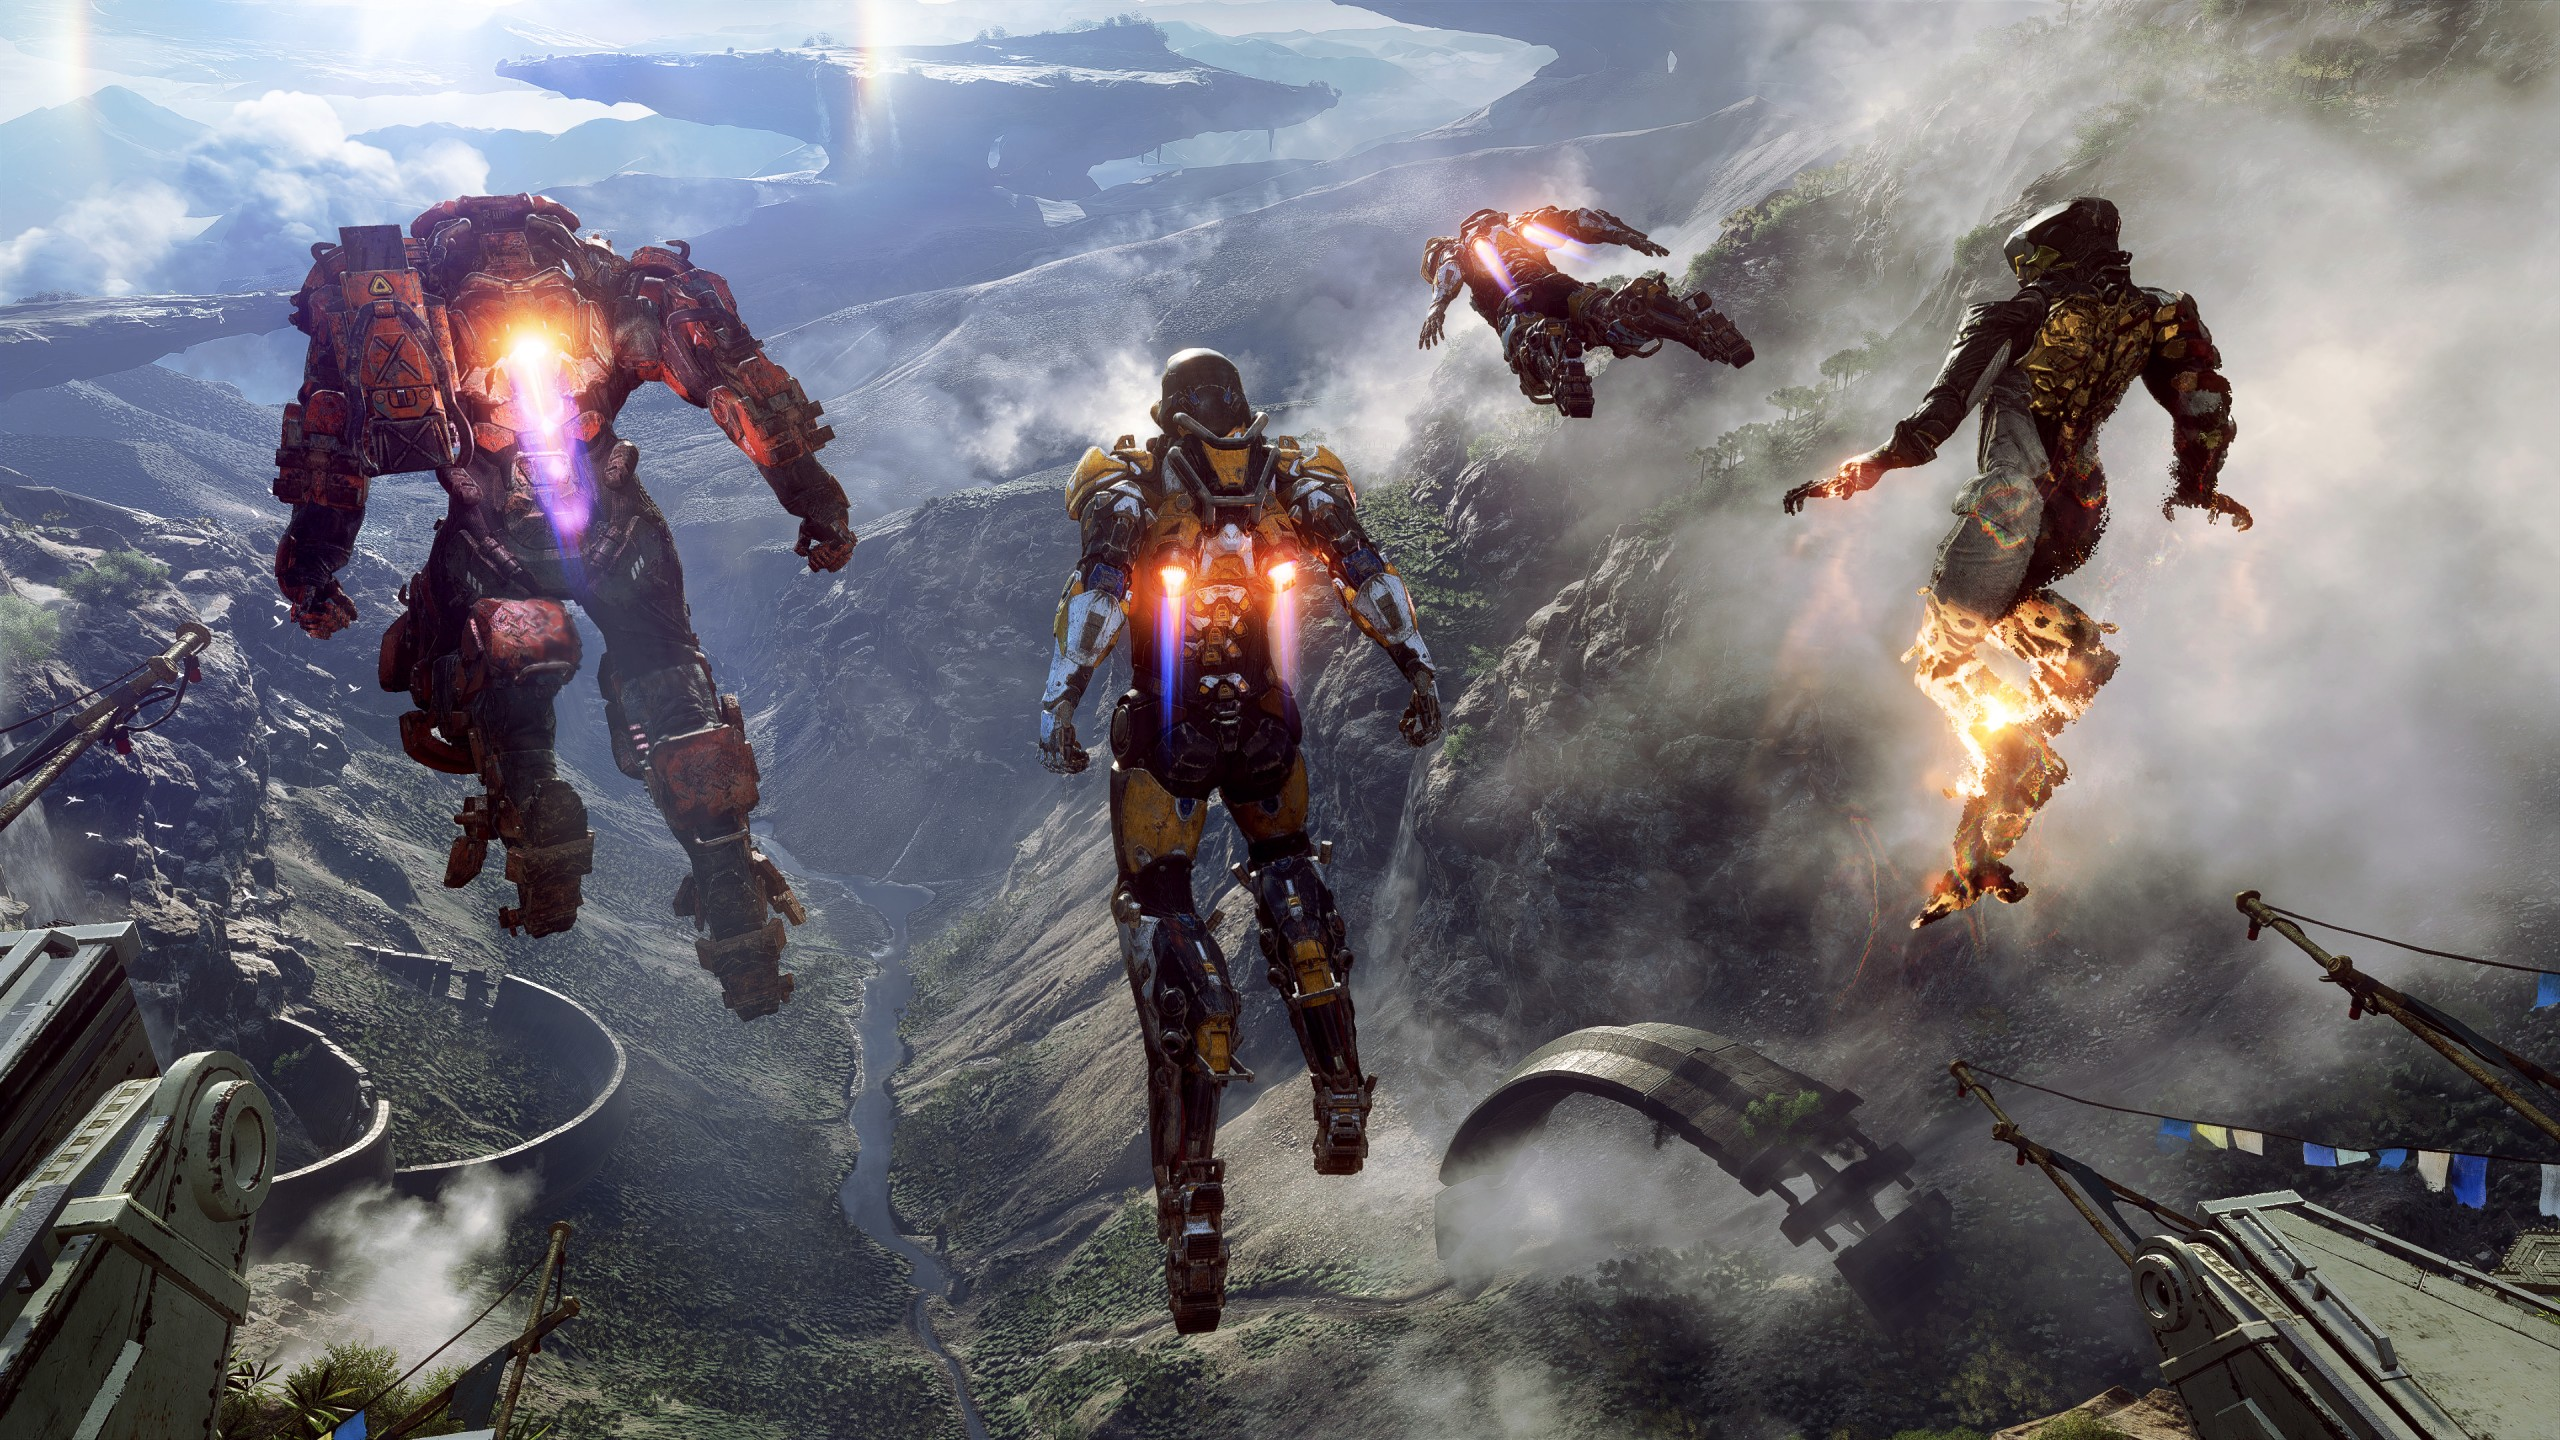 Ps4 Games Hd Wallpapers Anthem 2019 Game 4k Wallpapers Hd Wallpapers Id 24388